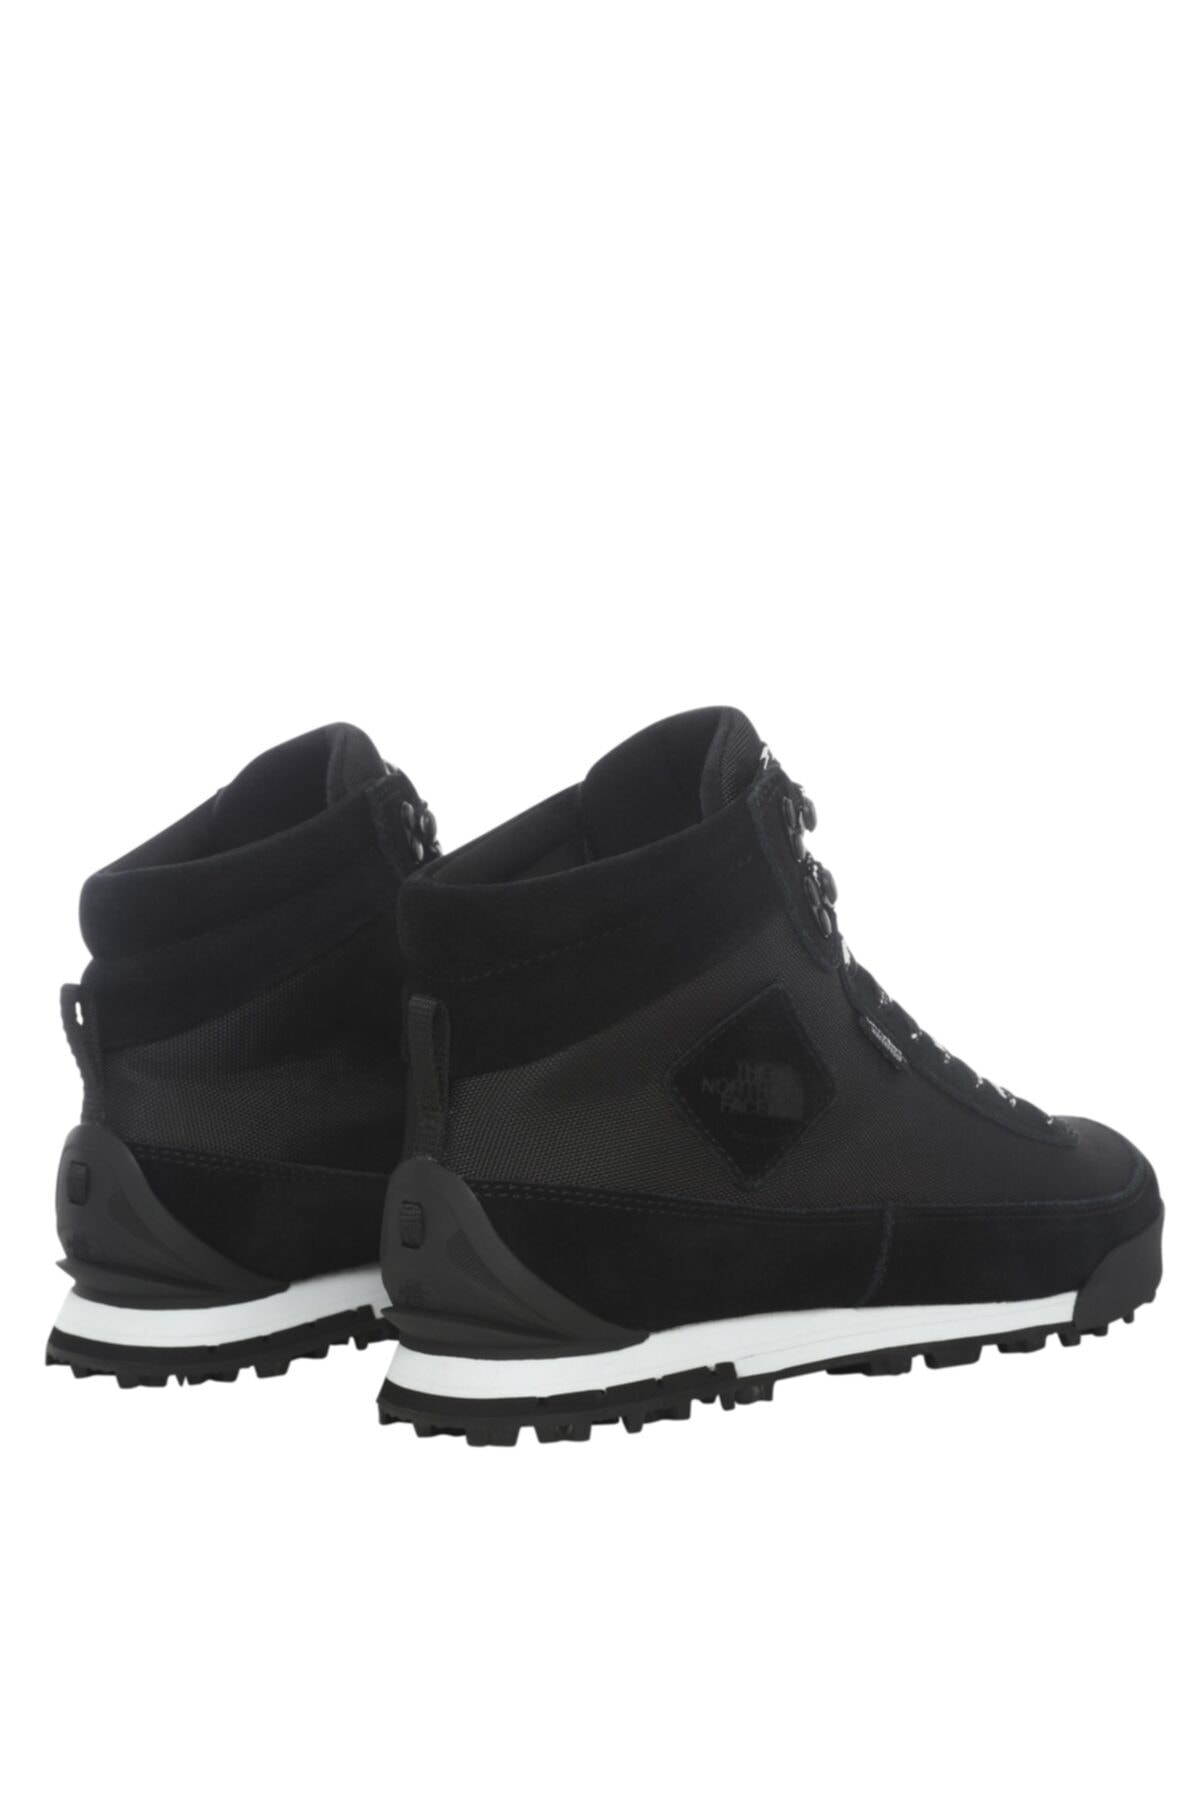 THE NORTH FACE W Back-2-berk Boot 2 Nf00a1mfky41 2